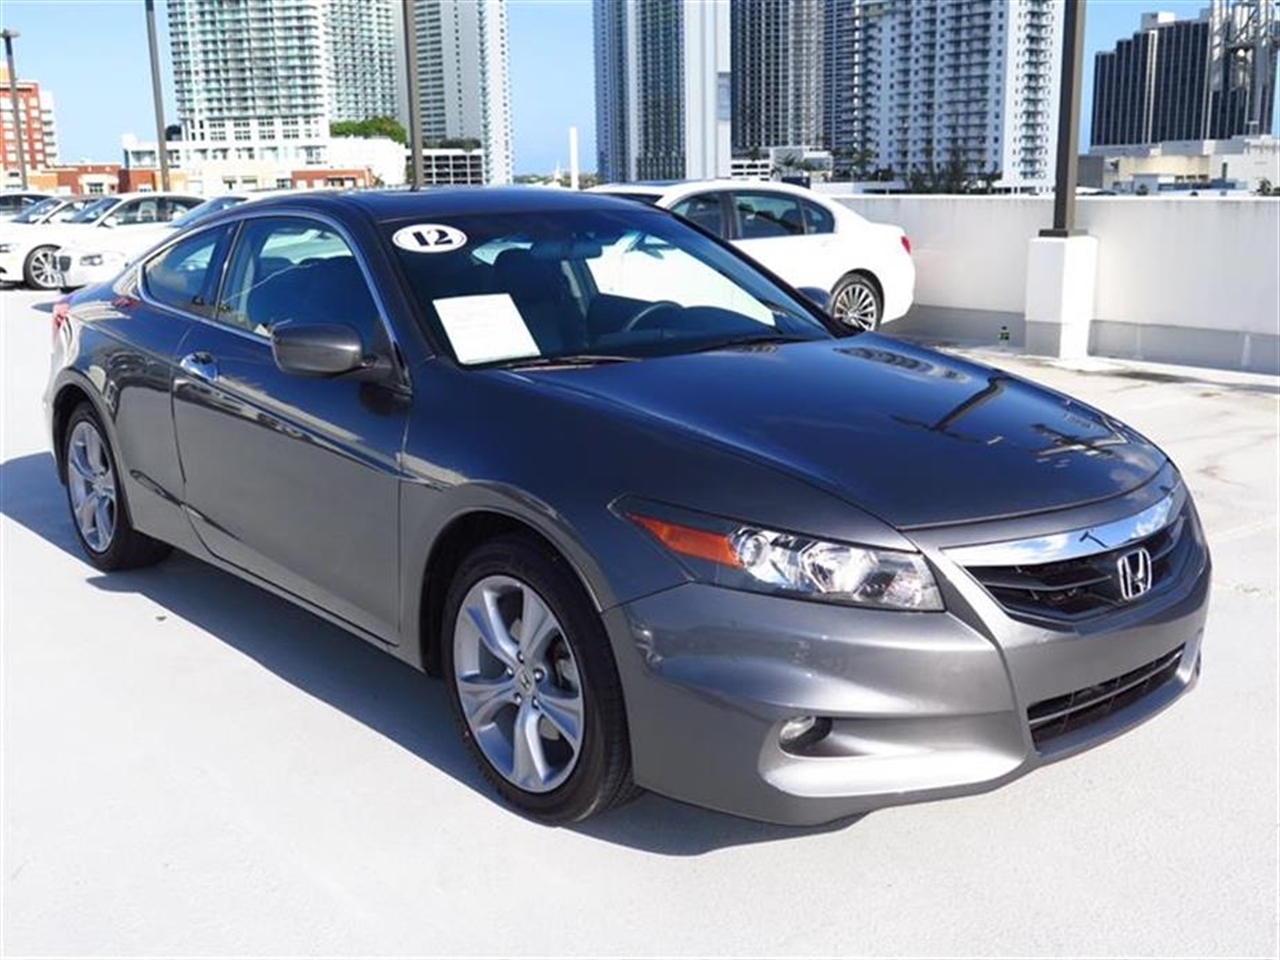 2012 HONDA ACCORD 2dr V6 Auto EX-L 14508 miles 2 12V pwr outlets Cargo area light Center cons